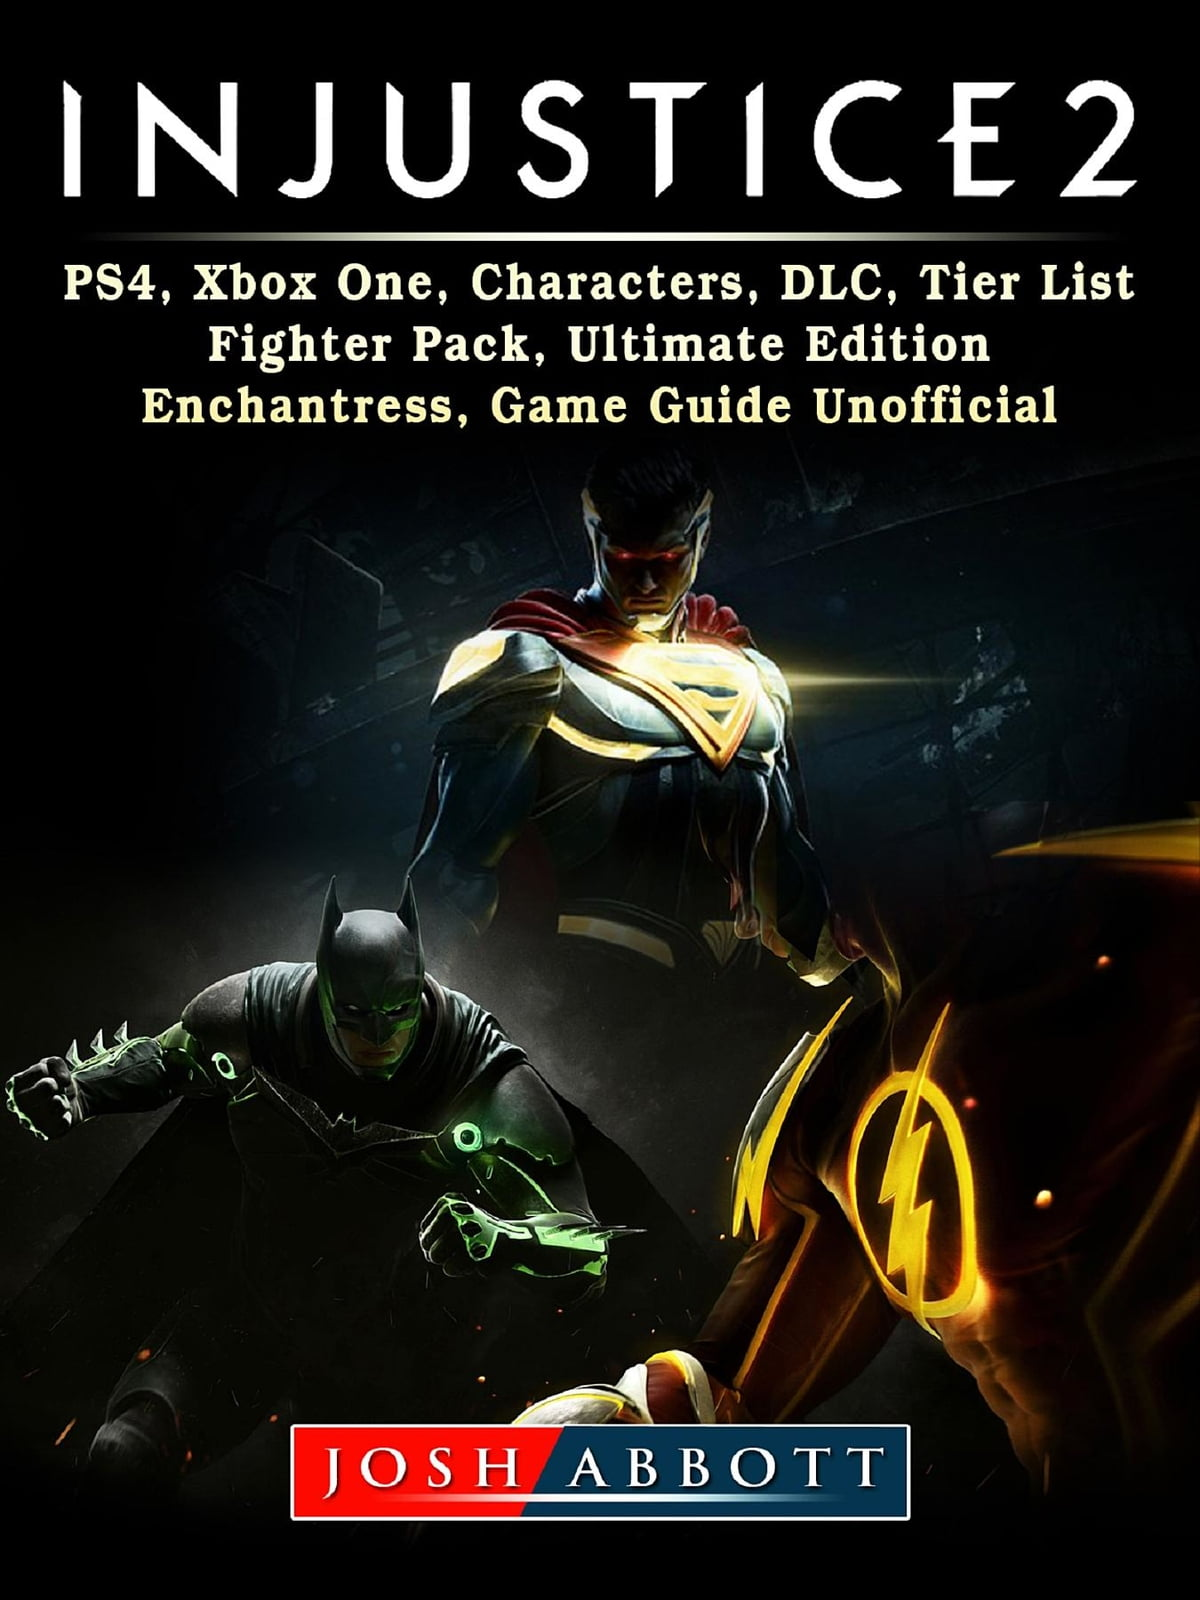 Injustice 2, PS4, Xbox One, Characters, DLC, Tier List, Fighter Pack,  Ultimate Edition, Enchantress, Game Guide Unofficial ebook by Josh Abbott -